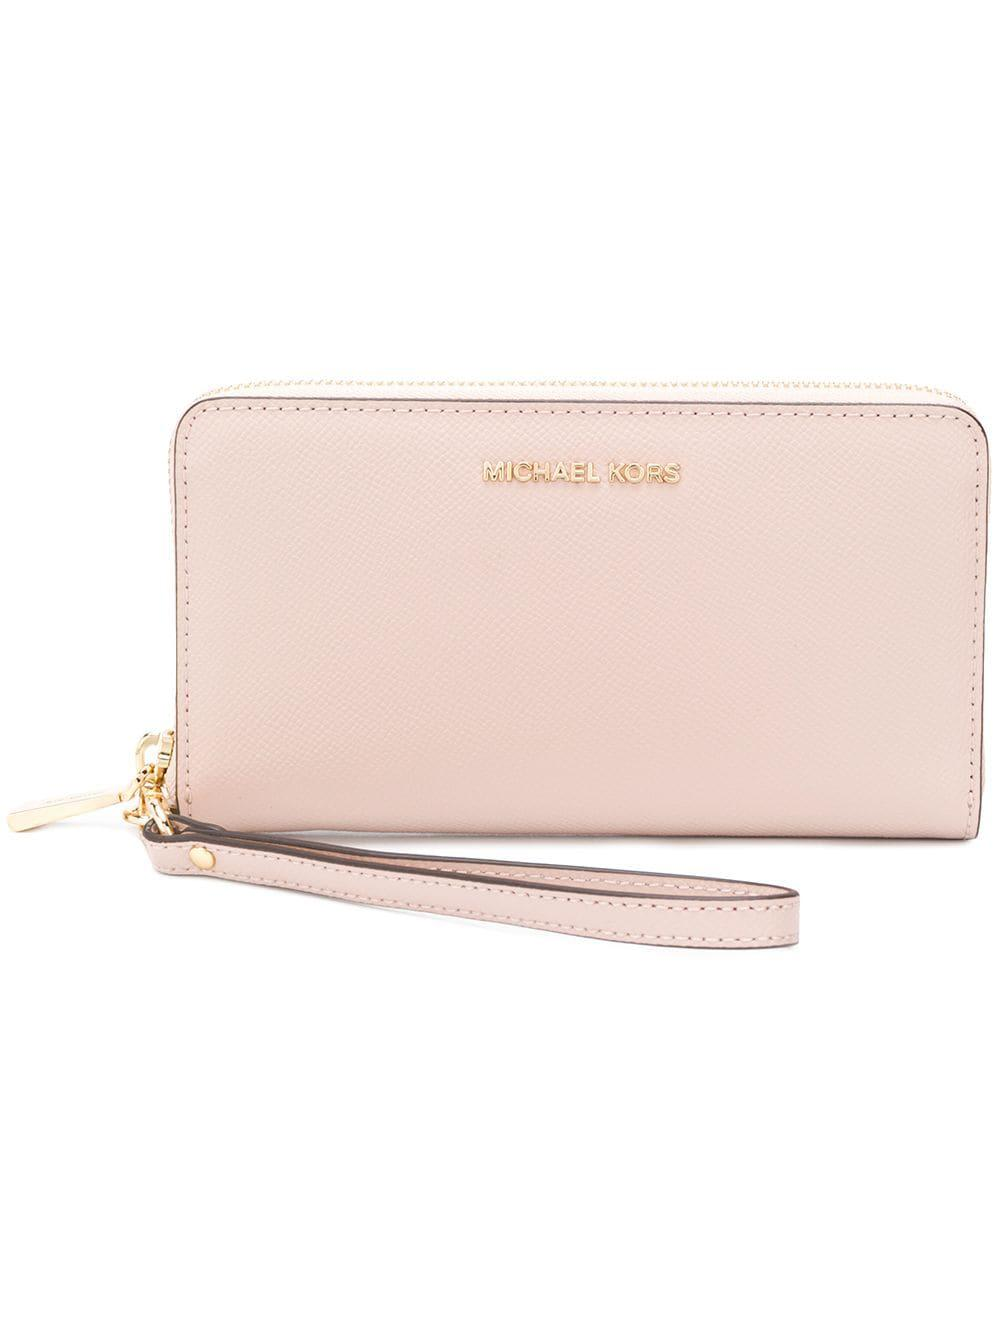 d76cf45b8e8d Lyst - Michael Michael Kors Leather Wristlet Pouch in Pink